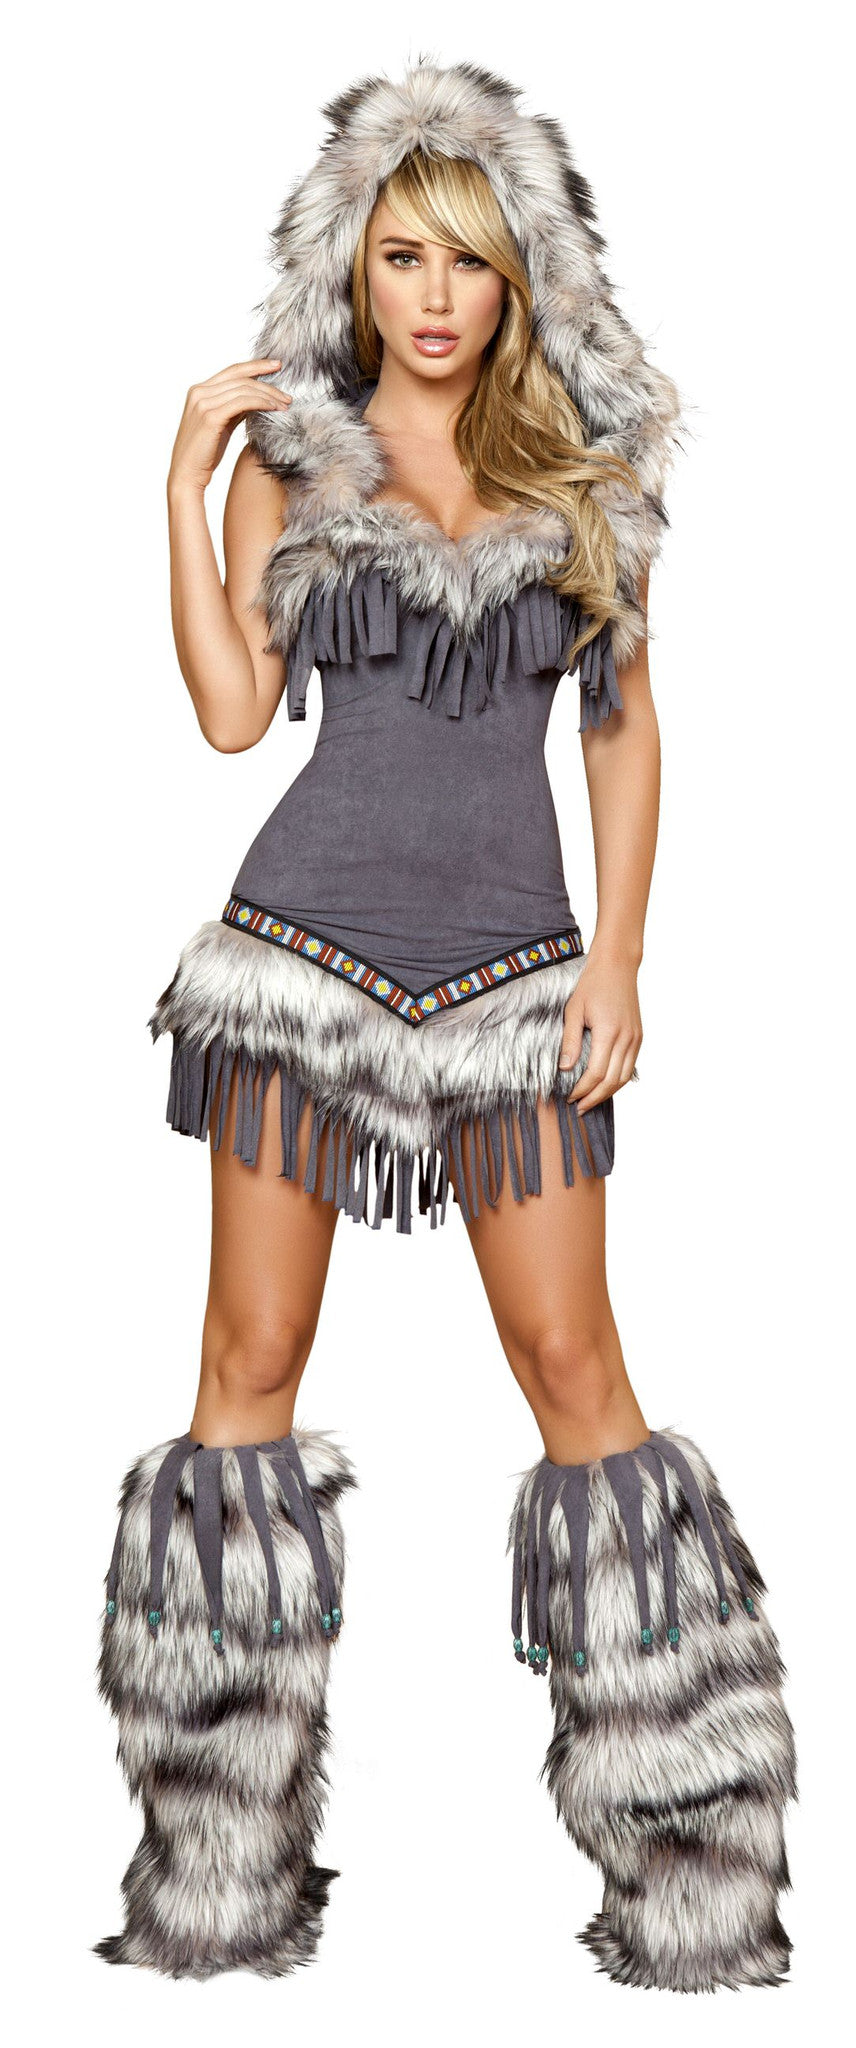 4427 - Native American Temptress ${description} | Roma Costume and Roma Confidential wholesale manufacturer of Women Apparel bulk world wide wholesale and world wide drop ship services for Adult Halloween Costumes, Sexy and Elegant Lingerie, Rave Clothing, Club wear, and Christmas Costumes. Costumes,2013 Costumes, Roma Costume, Inc., Roma Costume, Roma Confidential, Wholesale clothing, drop ship, drop ship service, Wholesale Lingerie, Wholesale Adult Halloween Costumes, Rave Clothing, EDM Clothing, Festival Wear, Christmas Costumes, Clubwear, Club wear.